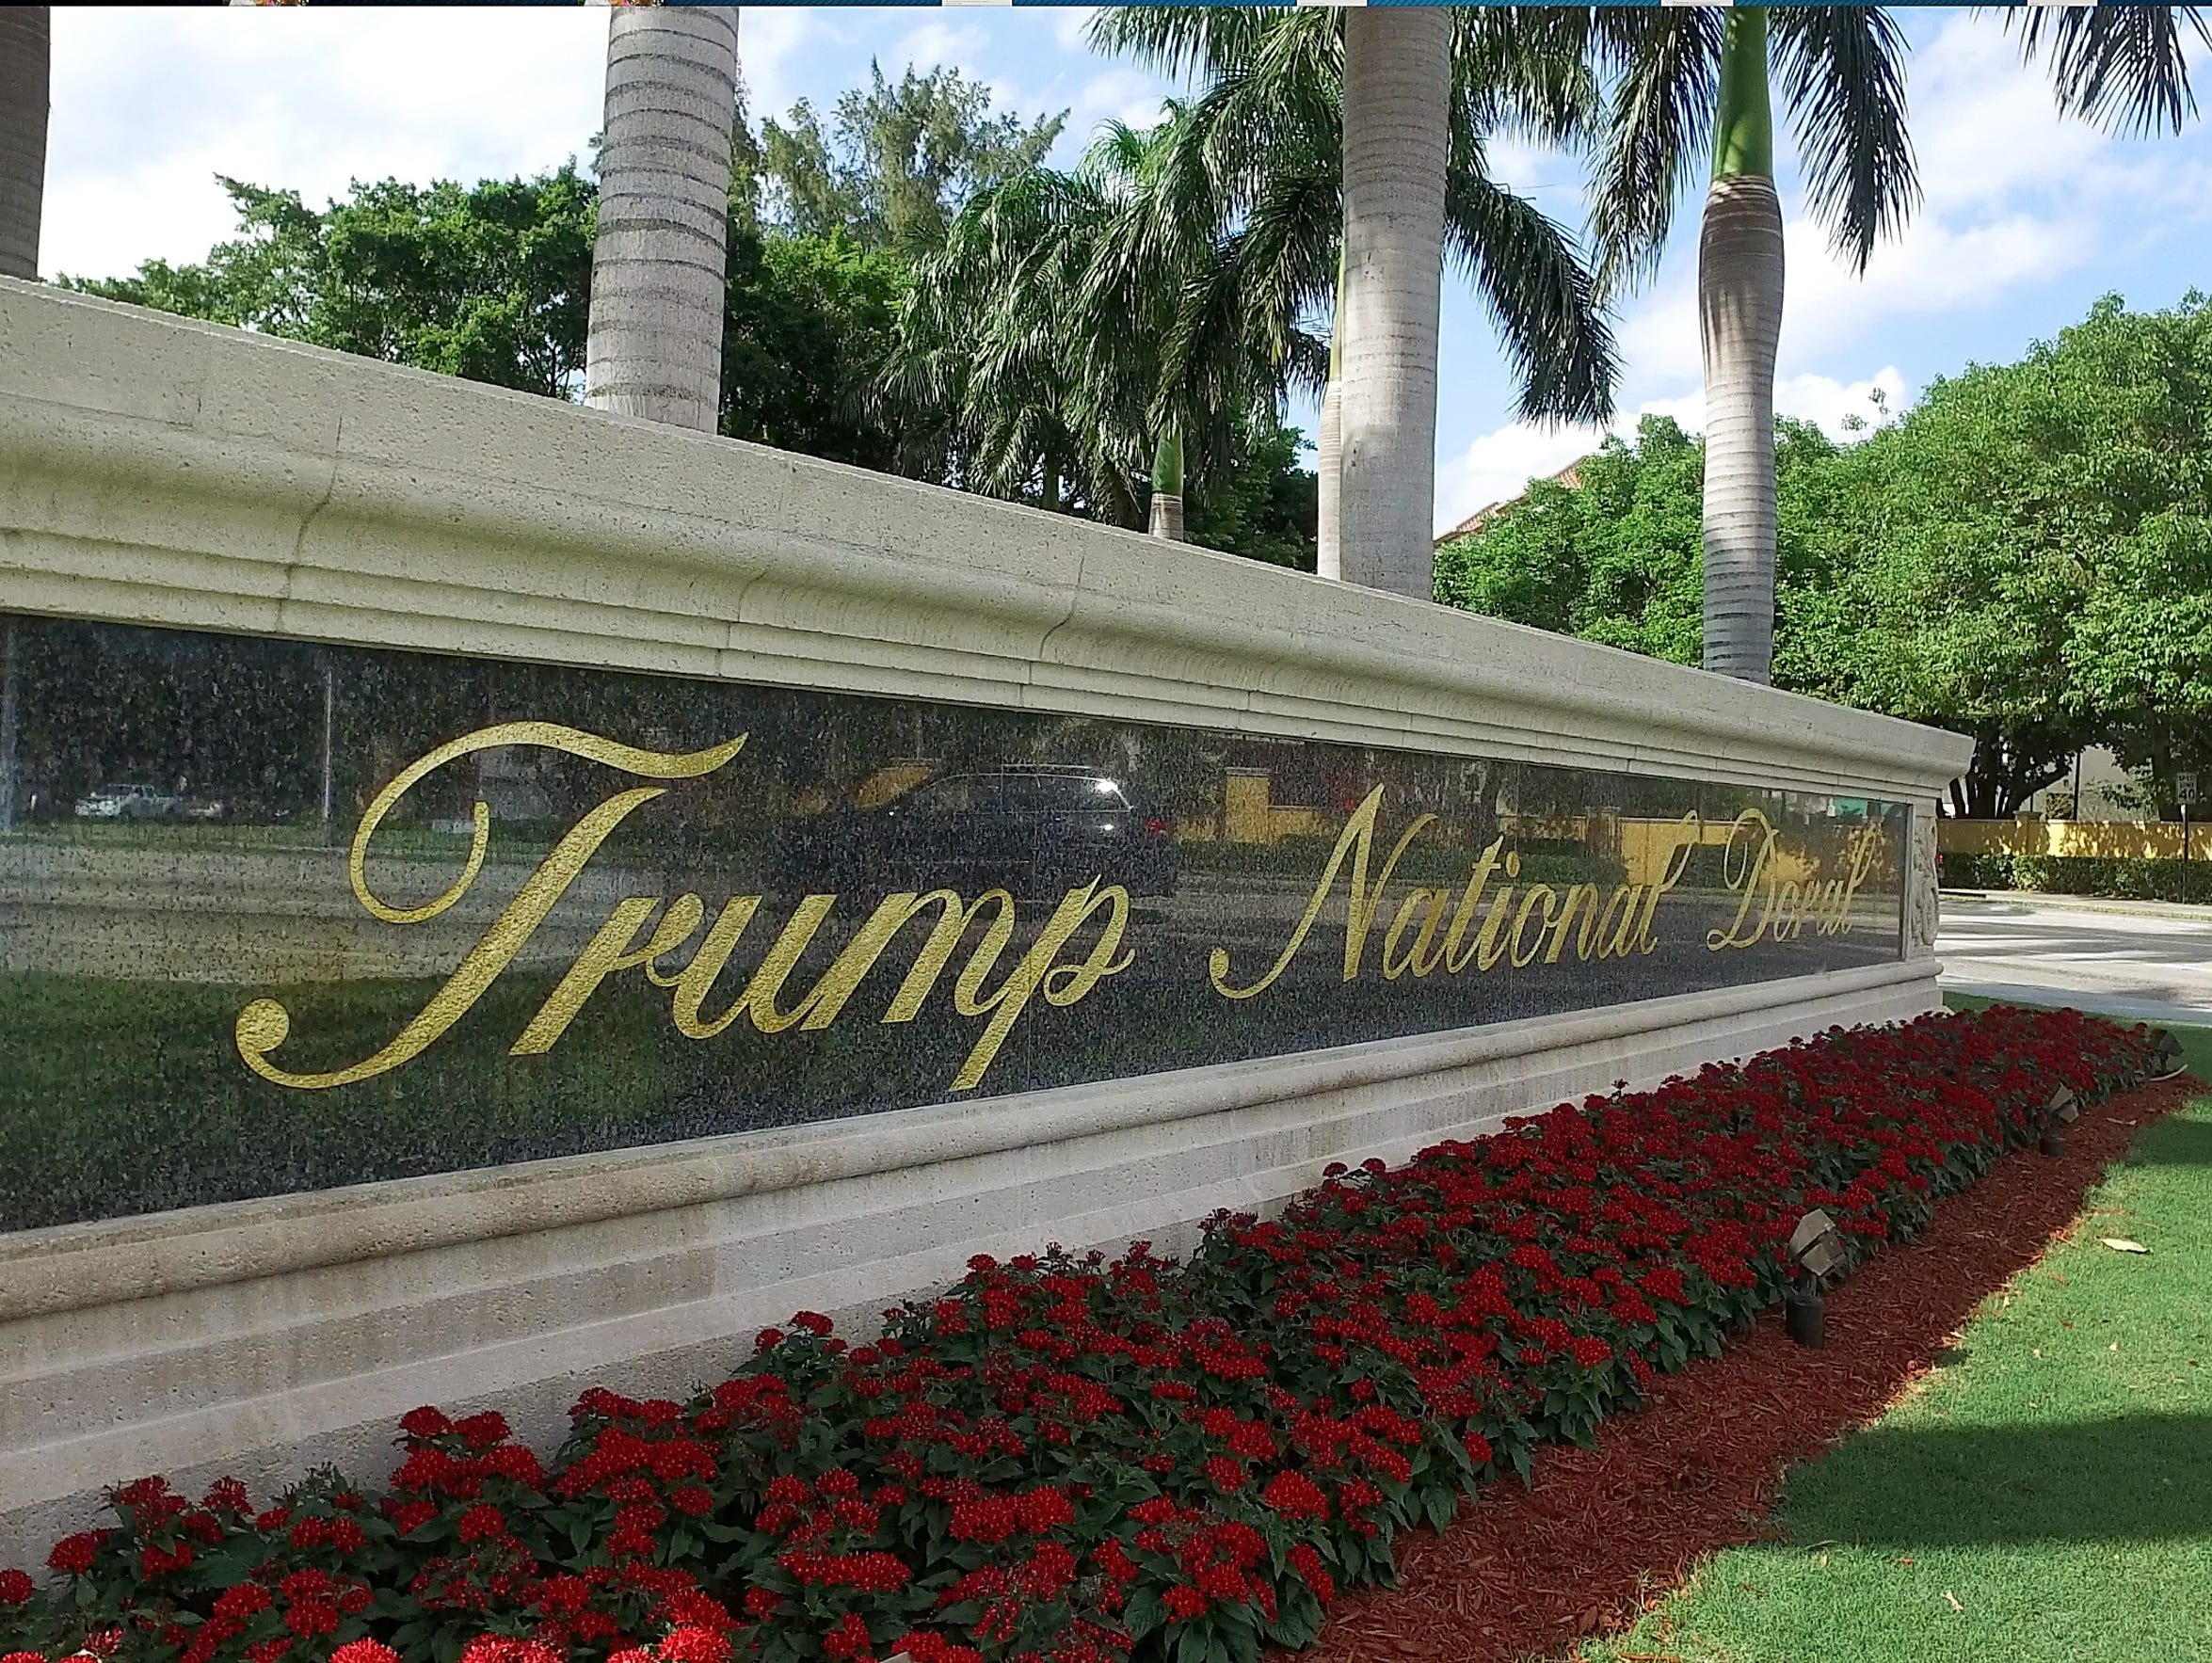 A view of the entrance sign at Trump National Doral